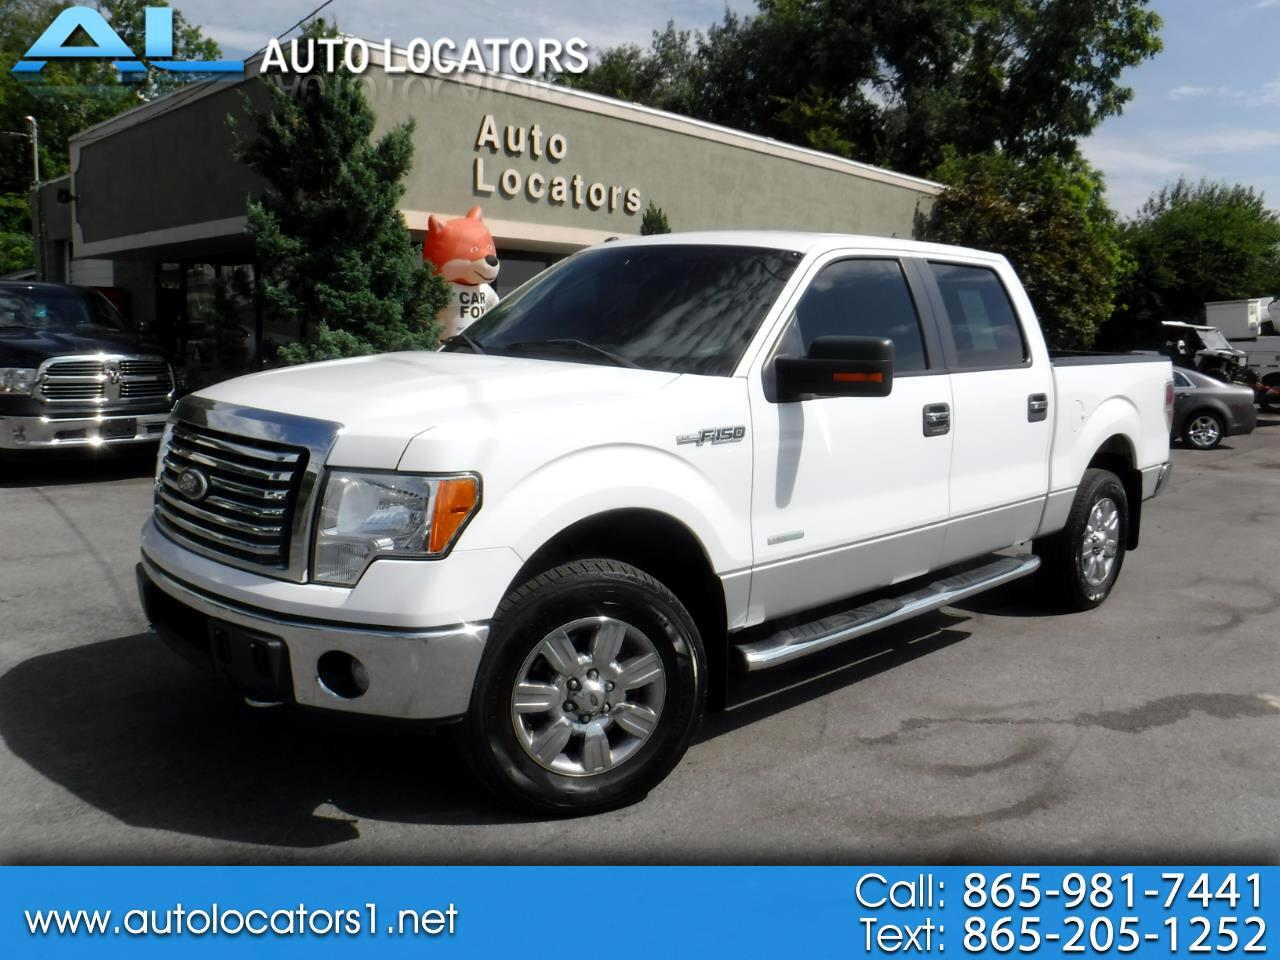 2011 Ford F-150 4WD Supercrew XLT